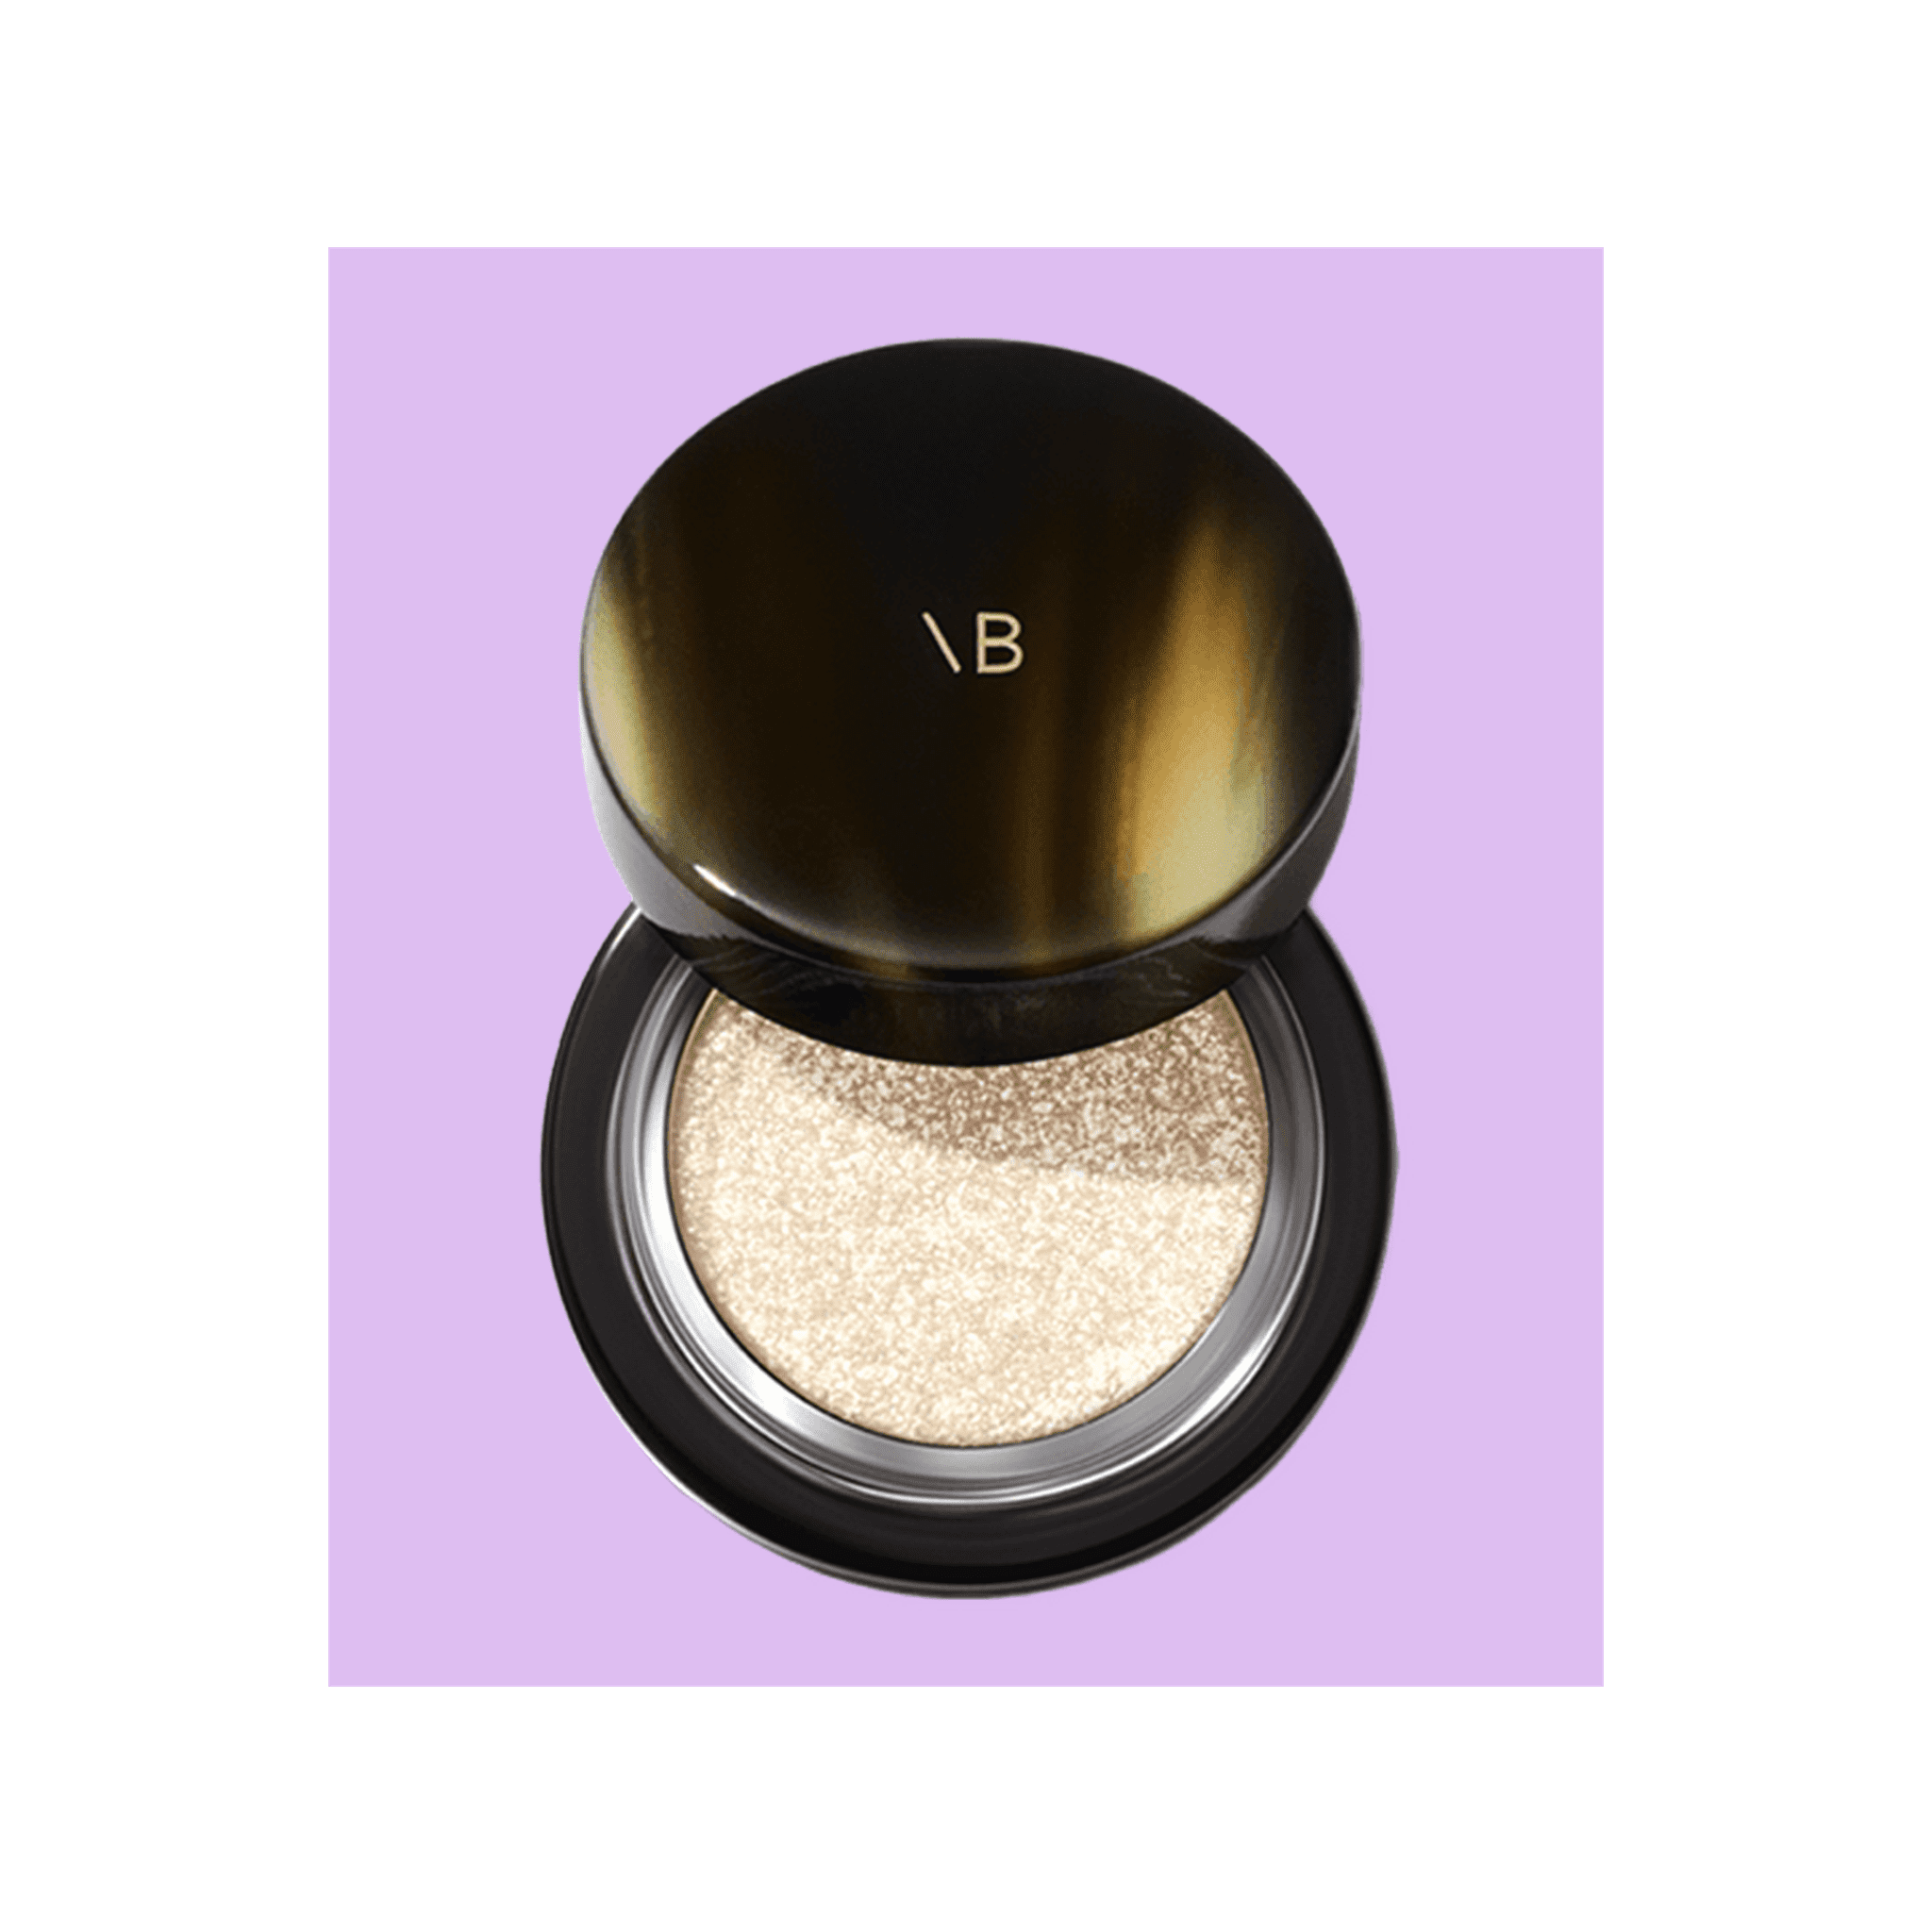 Victoria Beckham Beauty Lid Lustre in Blonde